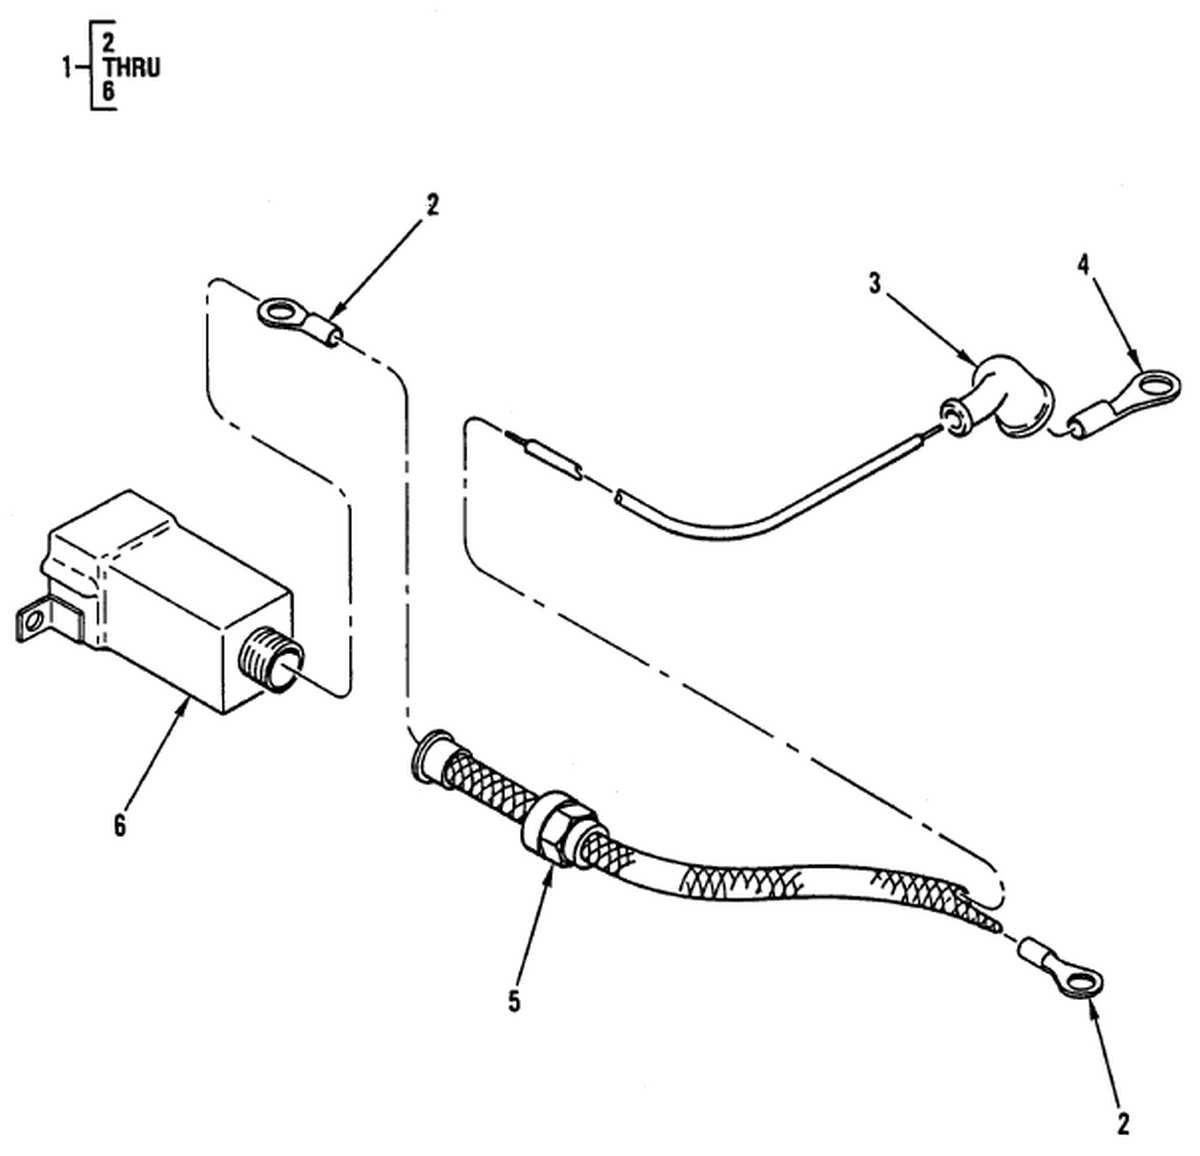 0107 00-2 Figure 106. Hull or Chassis Wiring Harness